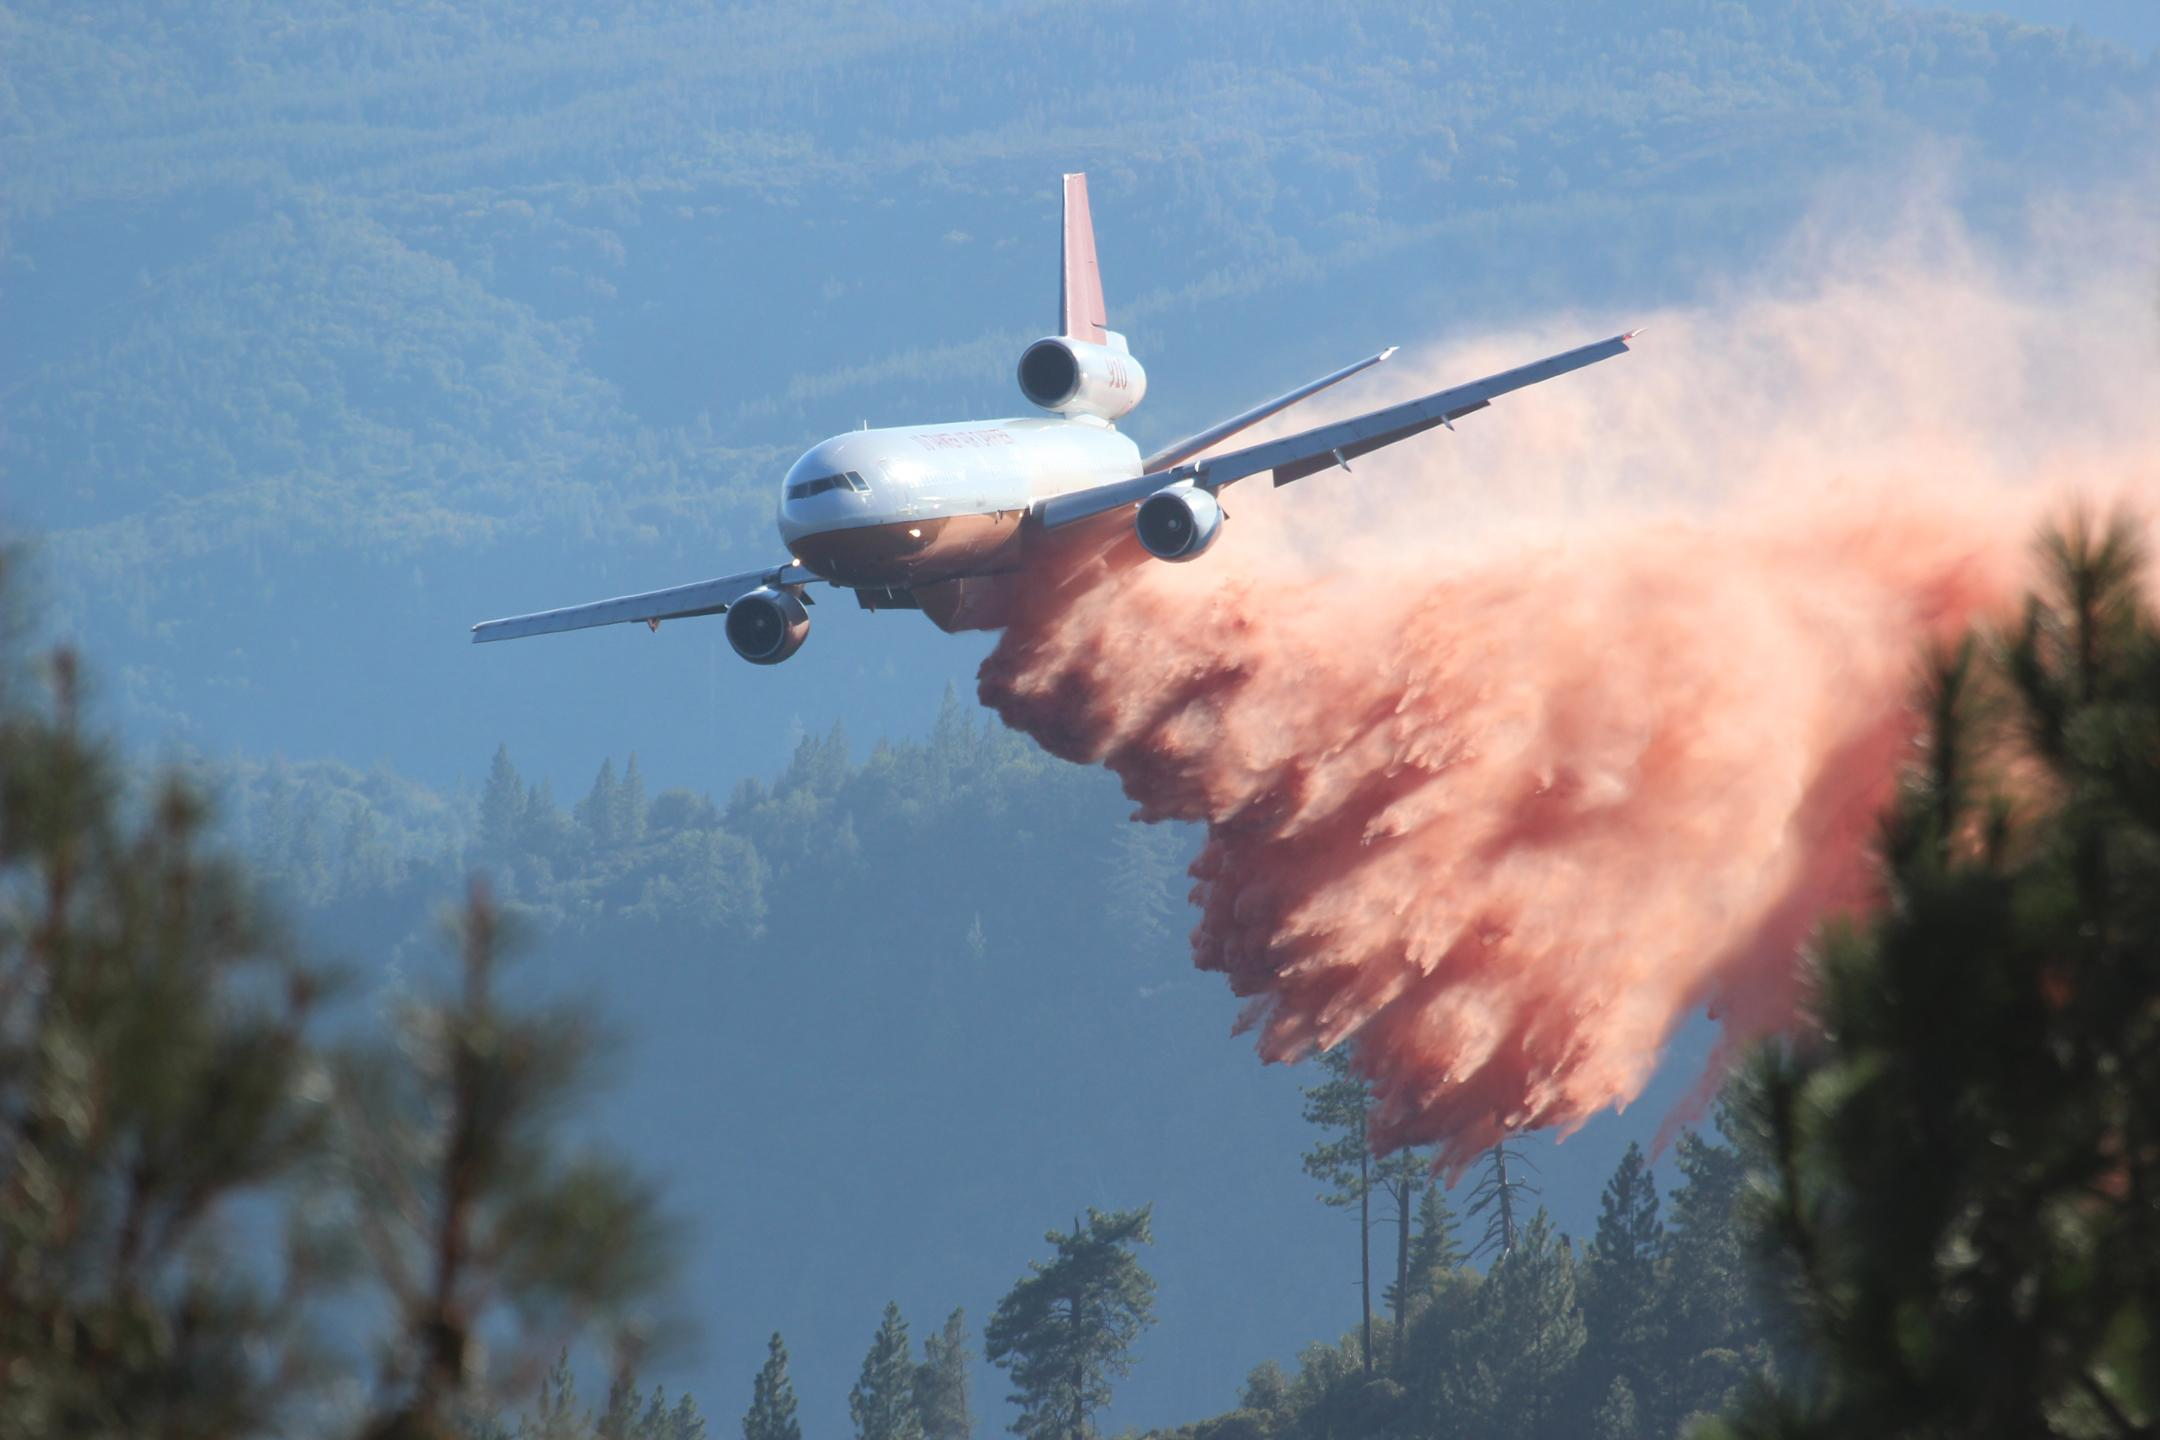 A DC-10 air tanker drops chemical fire retardant below Pilot Peak at the Rim Fire. The Rim Fire in the Stanislaus National Forest near in California began on Aug. 17, 2013 and is under investigation. The fire has consumed approximately 199,237 acres and is 32% contained. U.S. Forest Service photo by Mike McMillan.